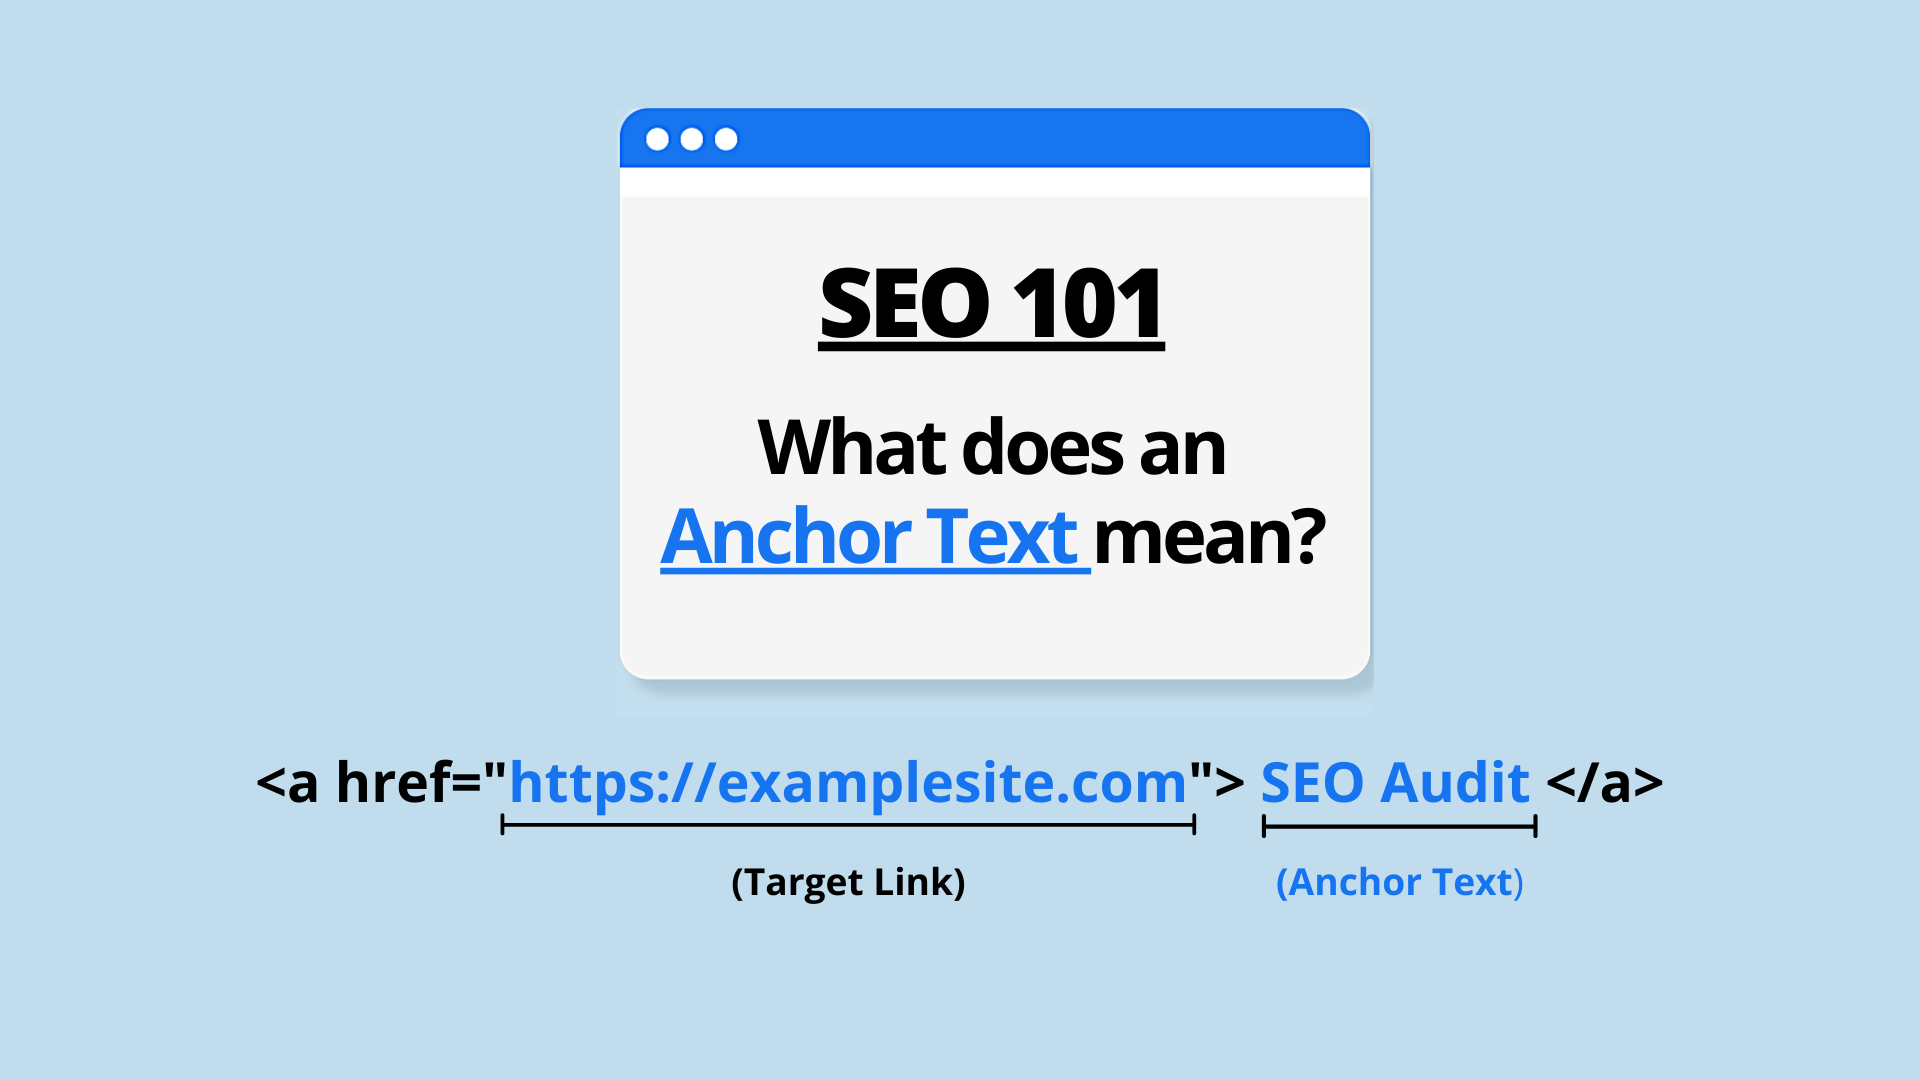 What is an Anchor Text?